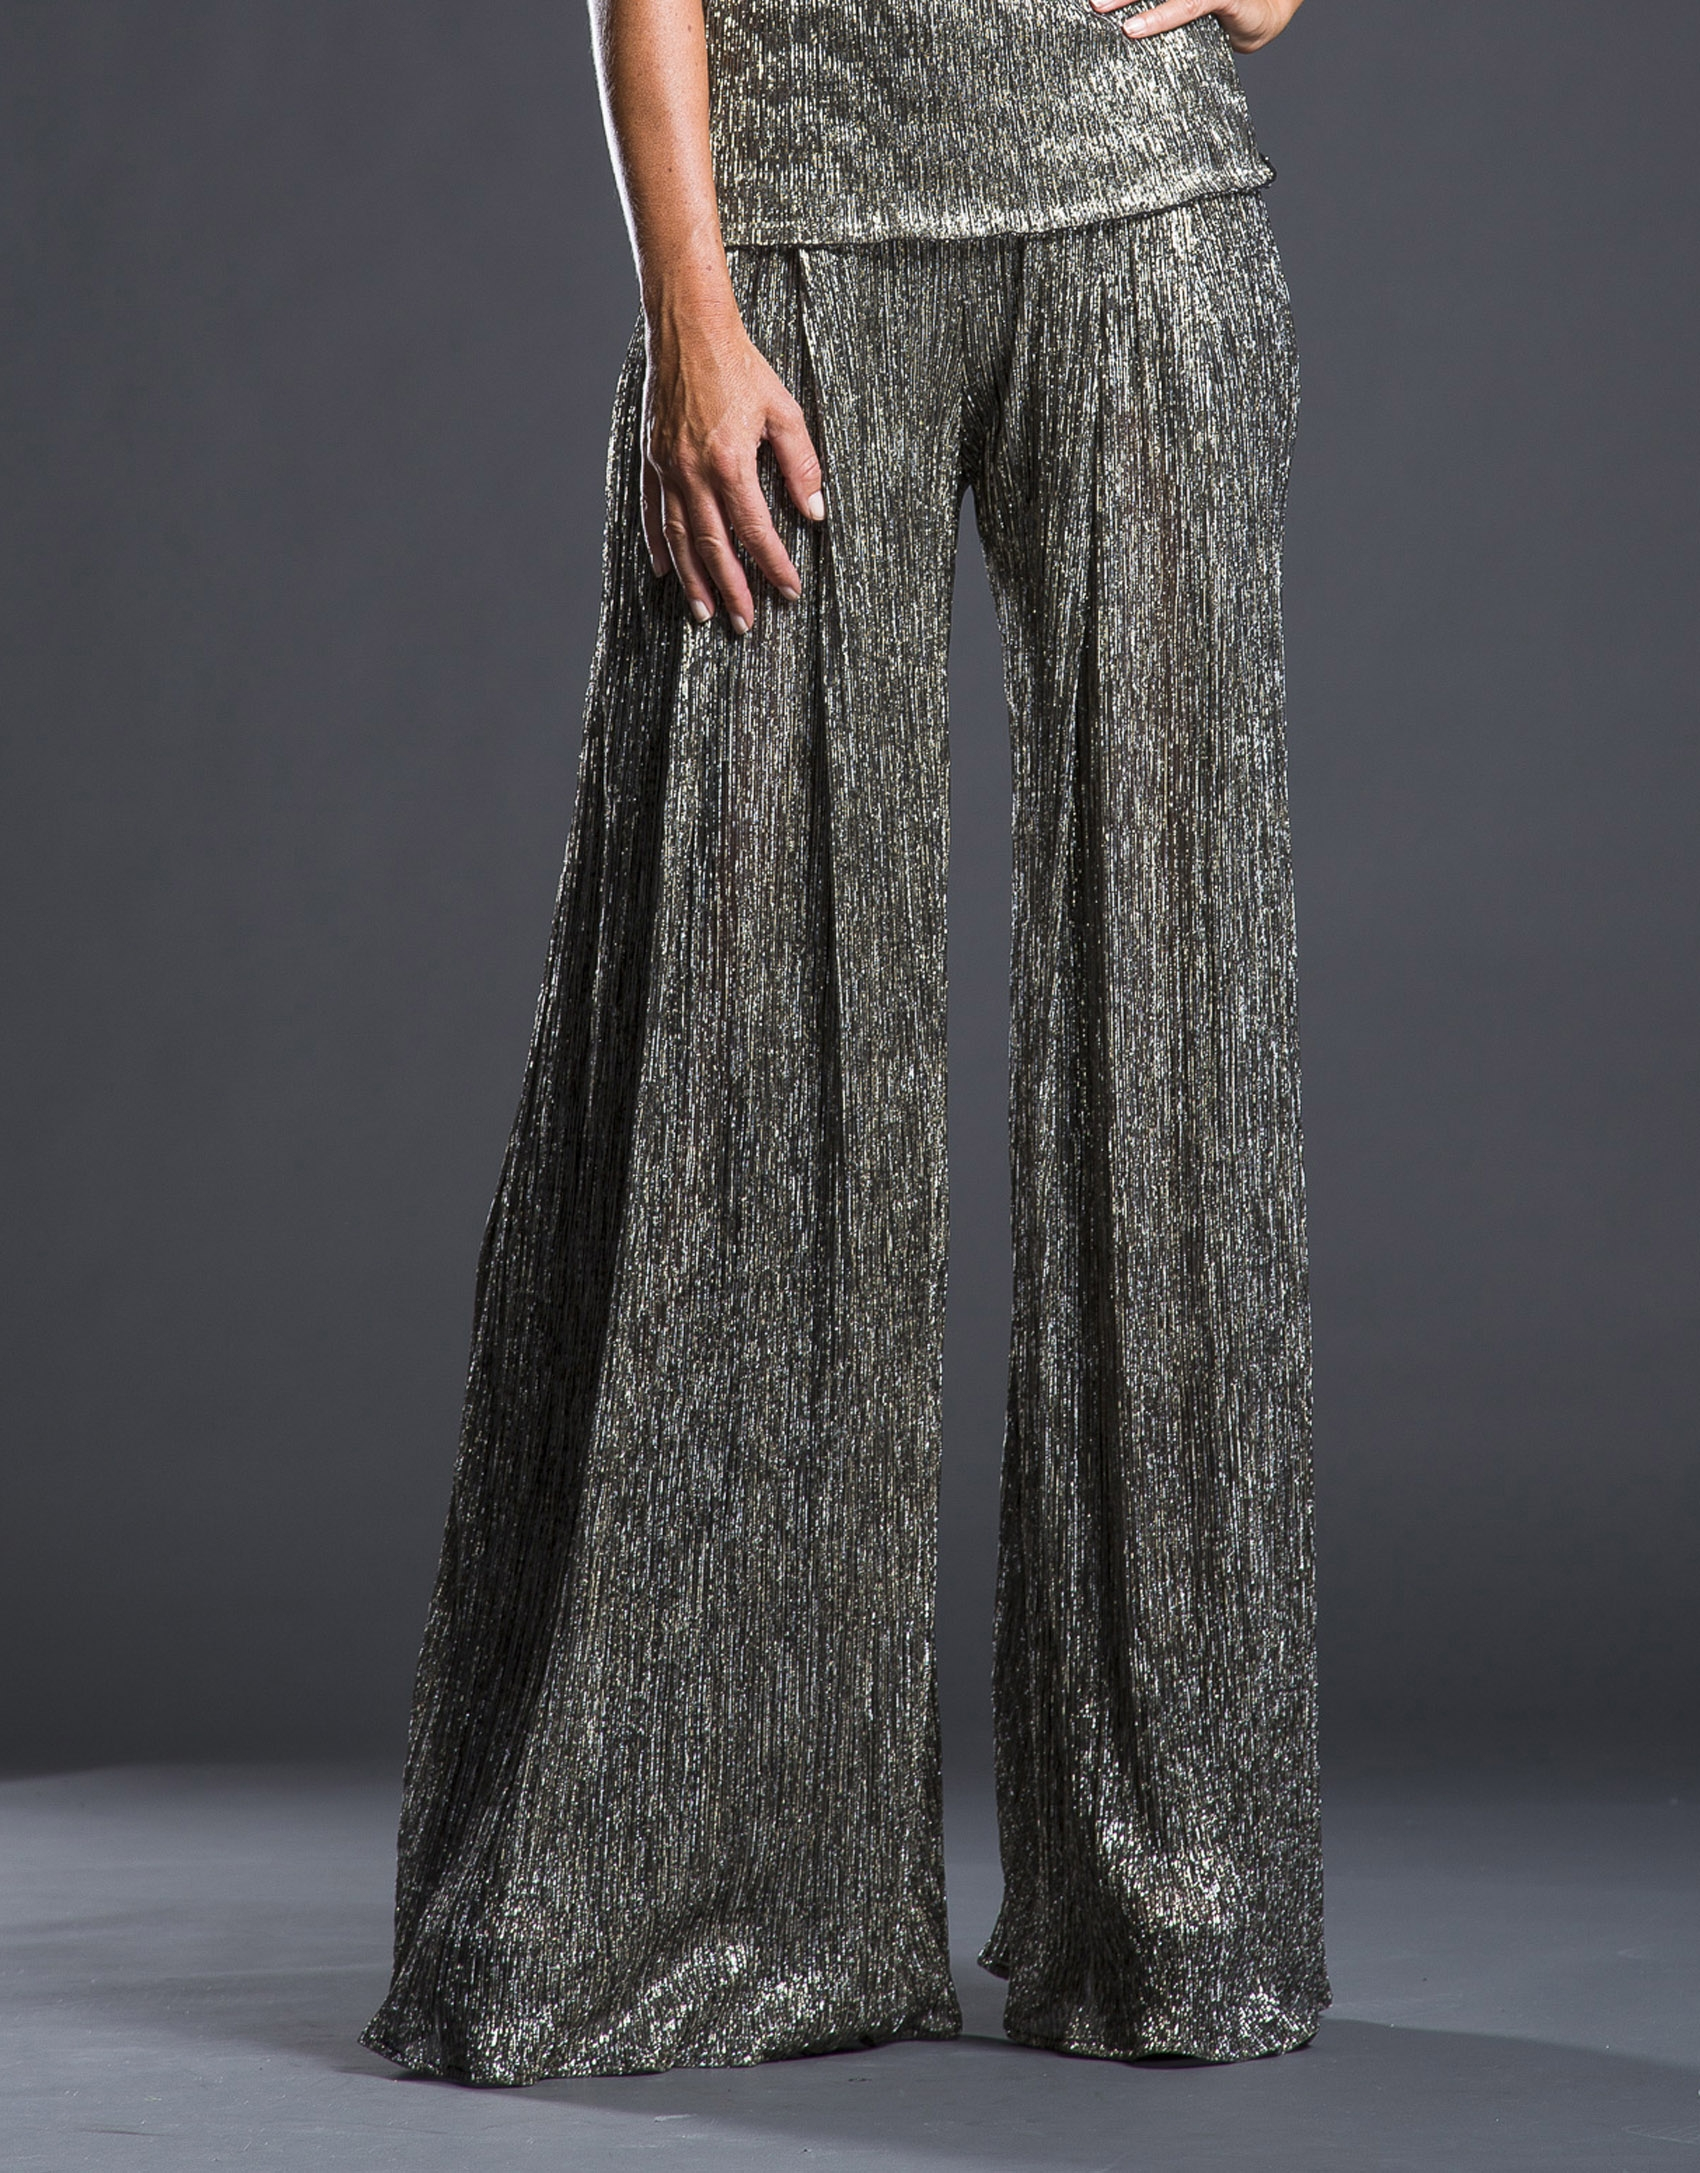 You searched for: silver lame pants! Etsy is the home to thousands of handmade, vintage, and one-of-a-kind products and gifts related to your search. No matter what you're looking for or where you are in the world, our global marketplace of sellers can help you find unique and affordable options. Let's get started!